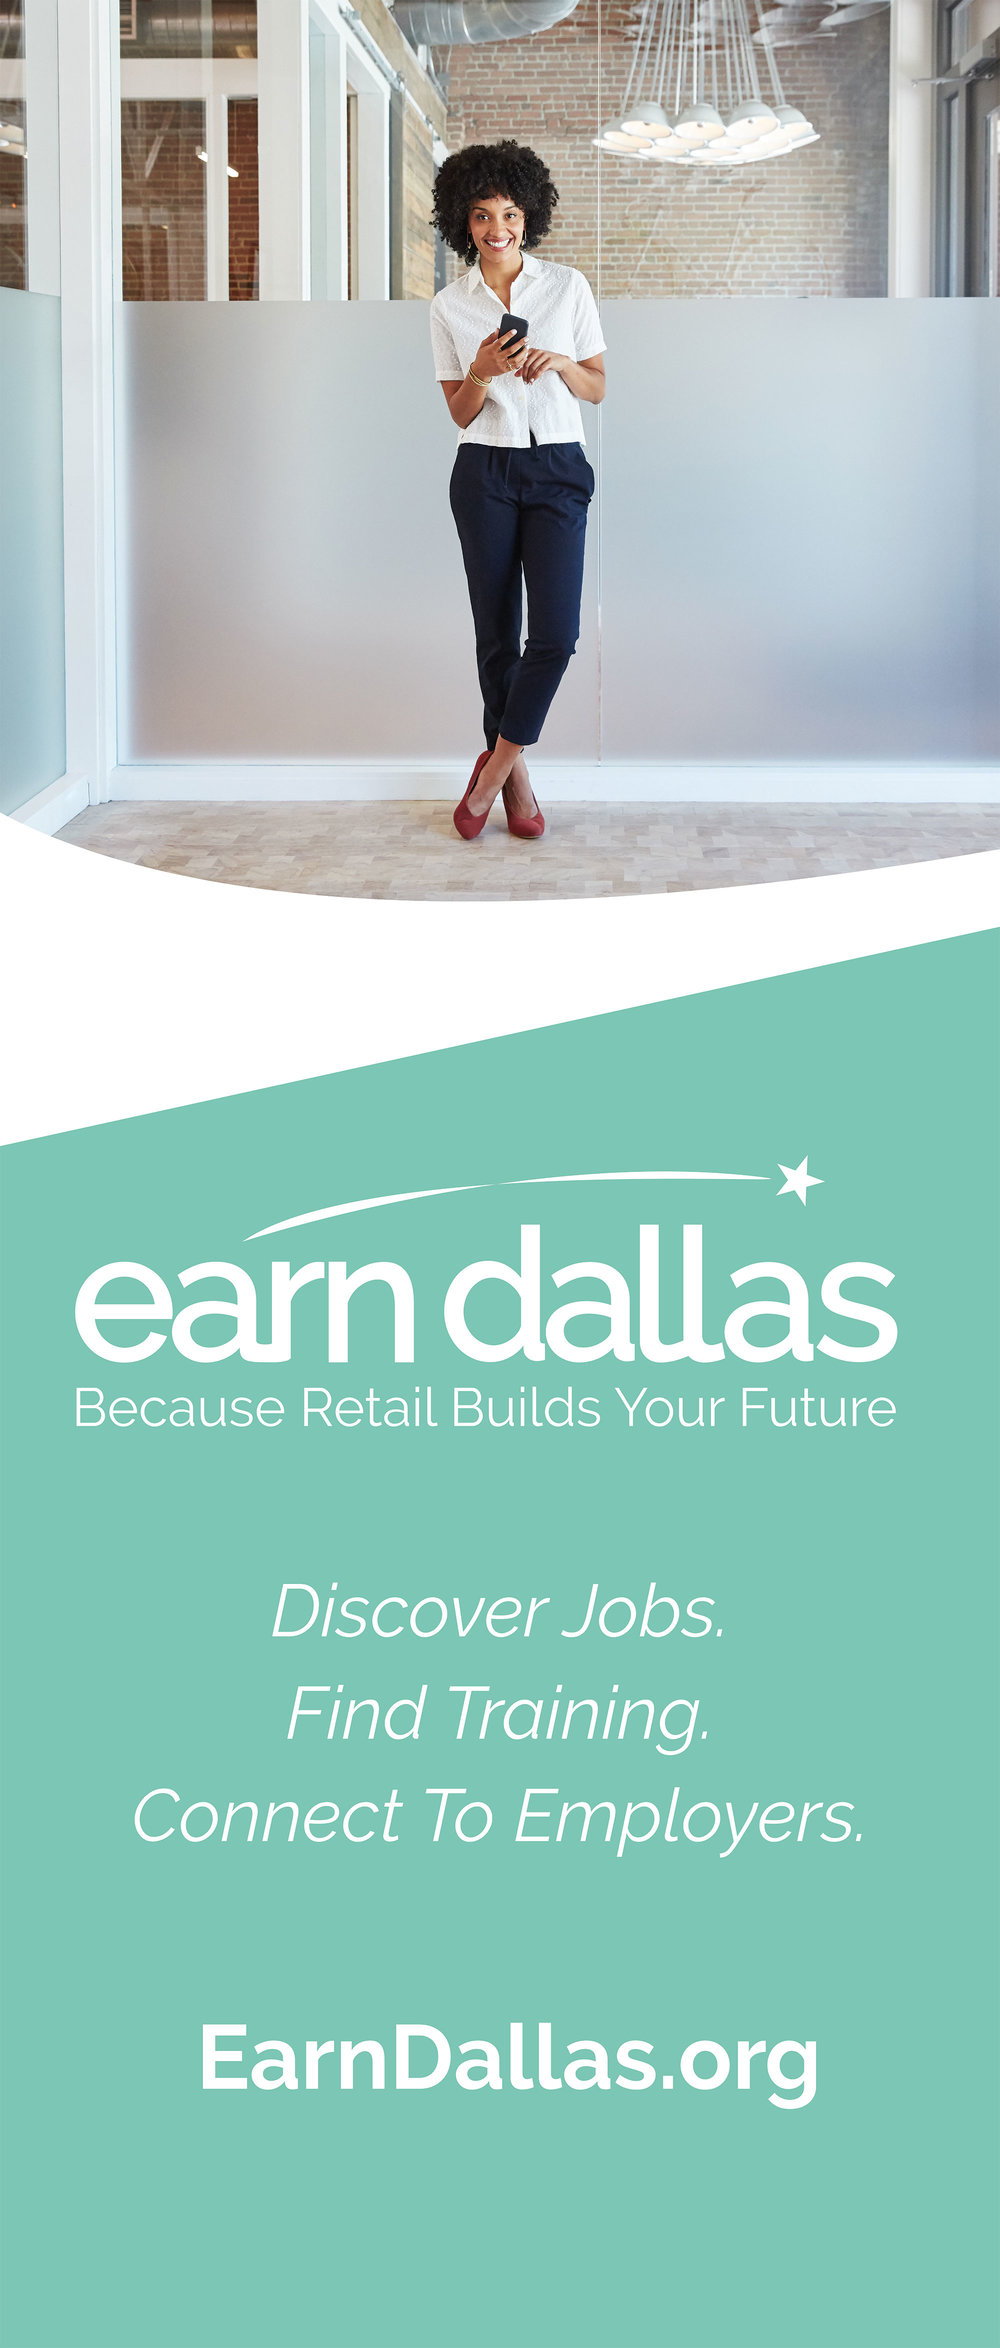 earndallas-retractable-banner-w2-F5.jpg